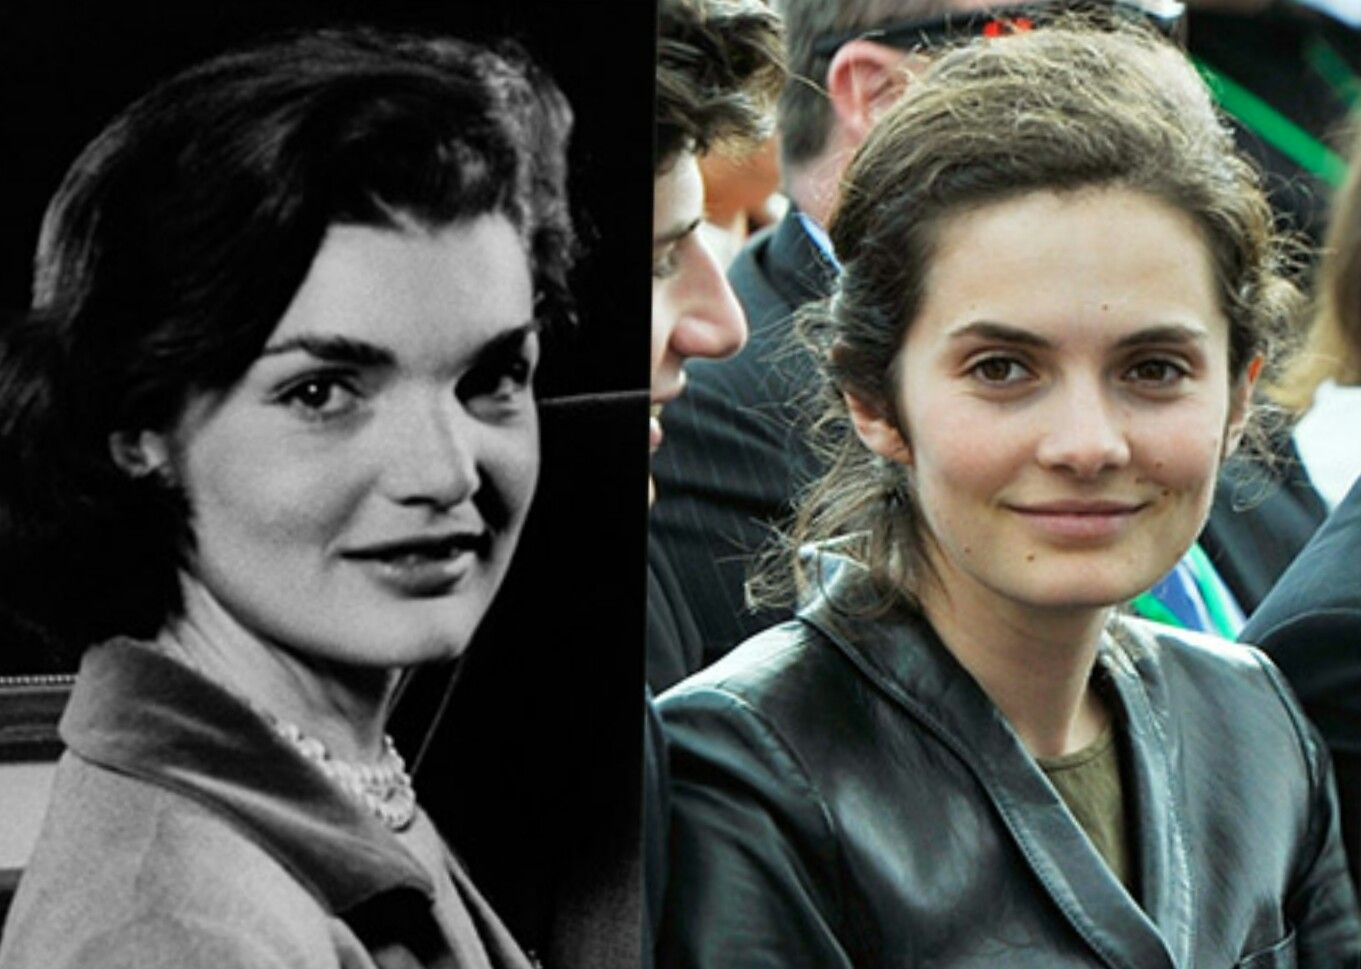 Jacqueline bouvier kennedy onassis pictured next to granddaughter jacqueline bouvier kennedy onassis pictured next to granddaughter rose schlossberg a daughter of caroline kennedy schlossberg and edwin schlossberg altavistaventures Images